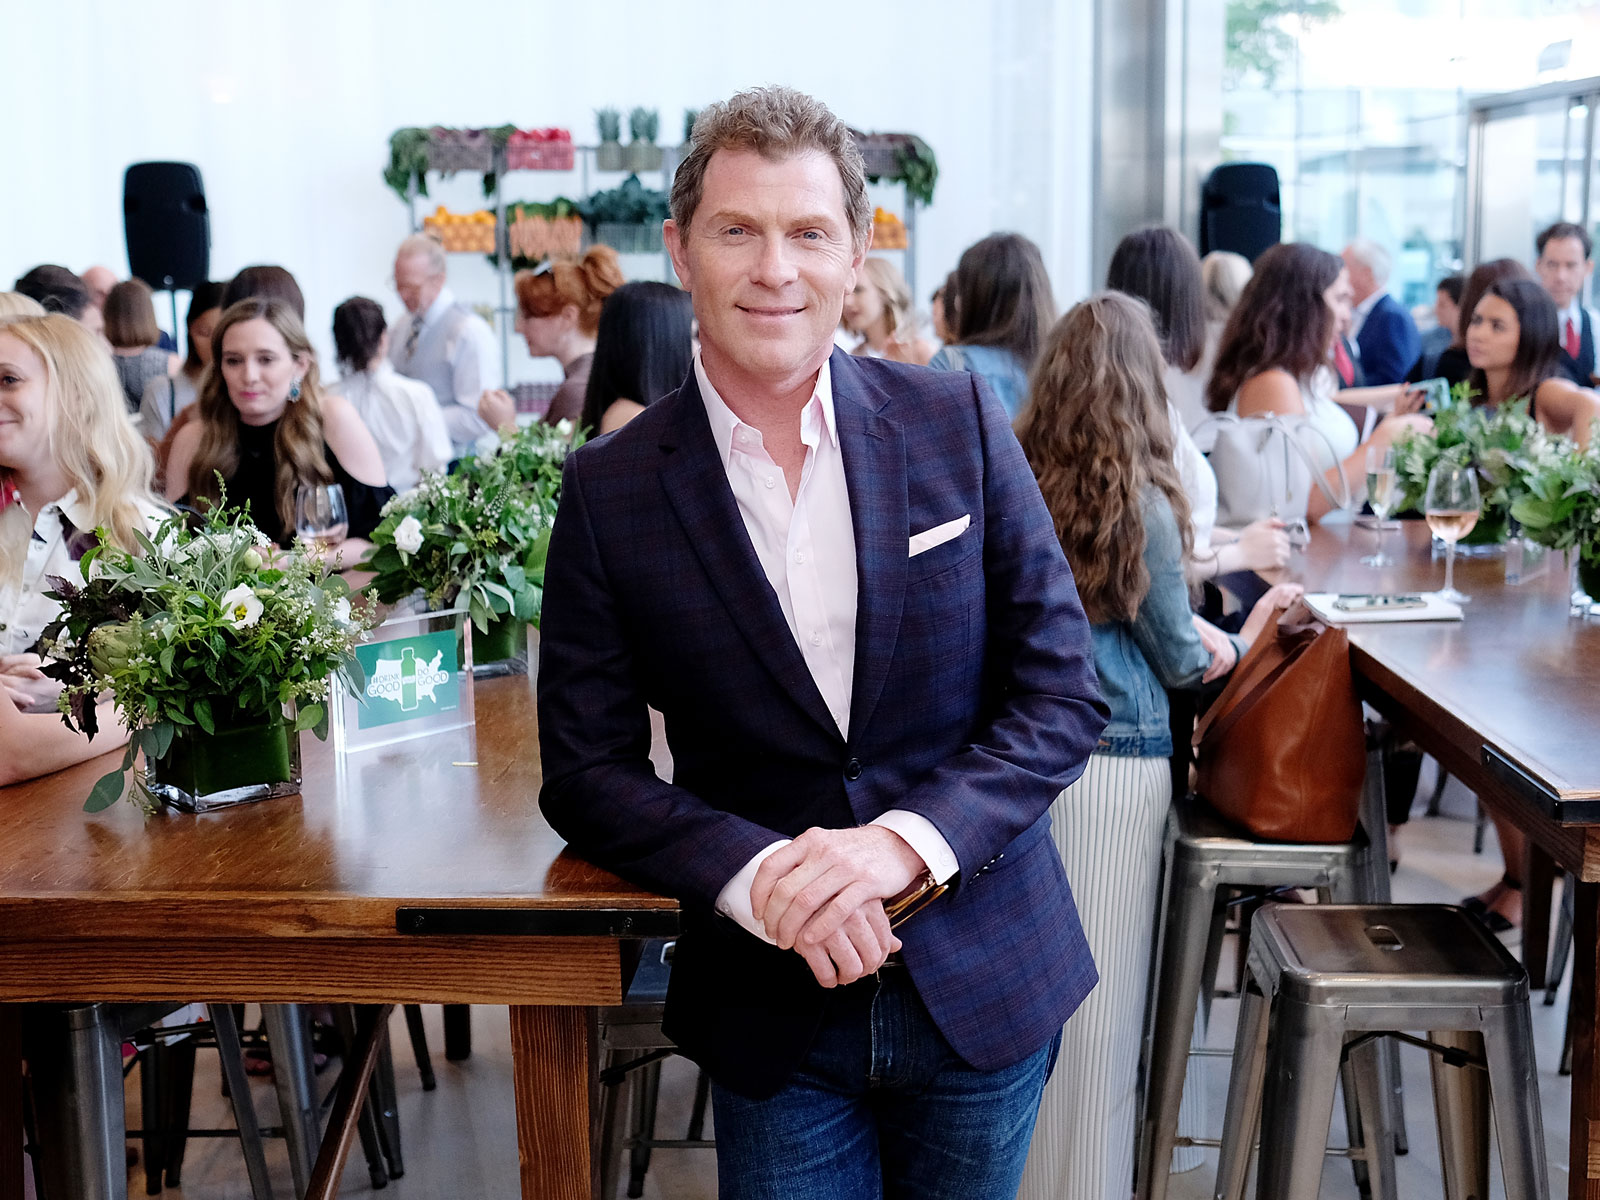 bobby-flay-thanksgiving-ft-blog1117.jpg